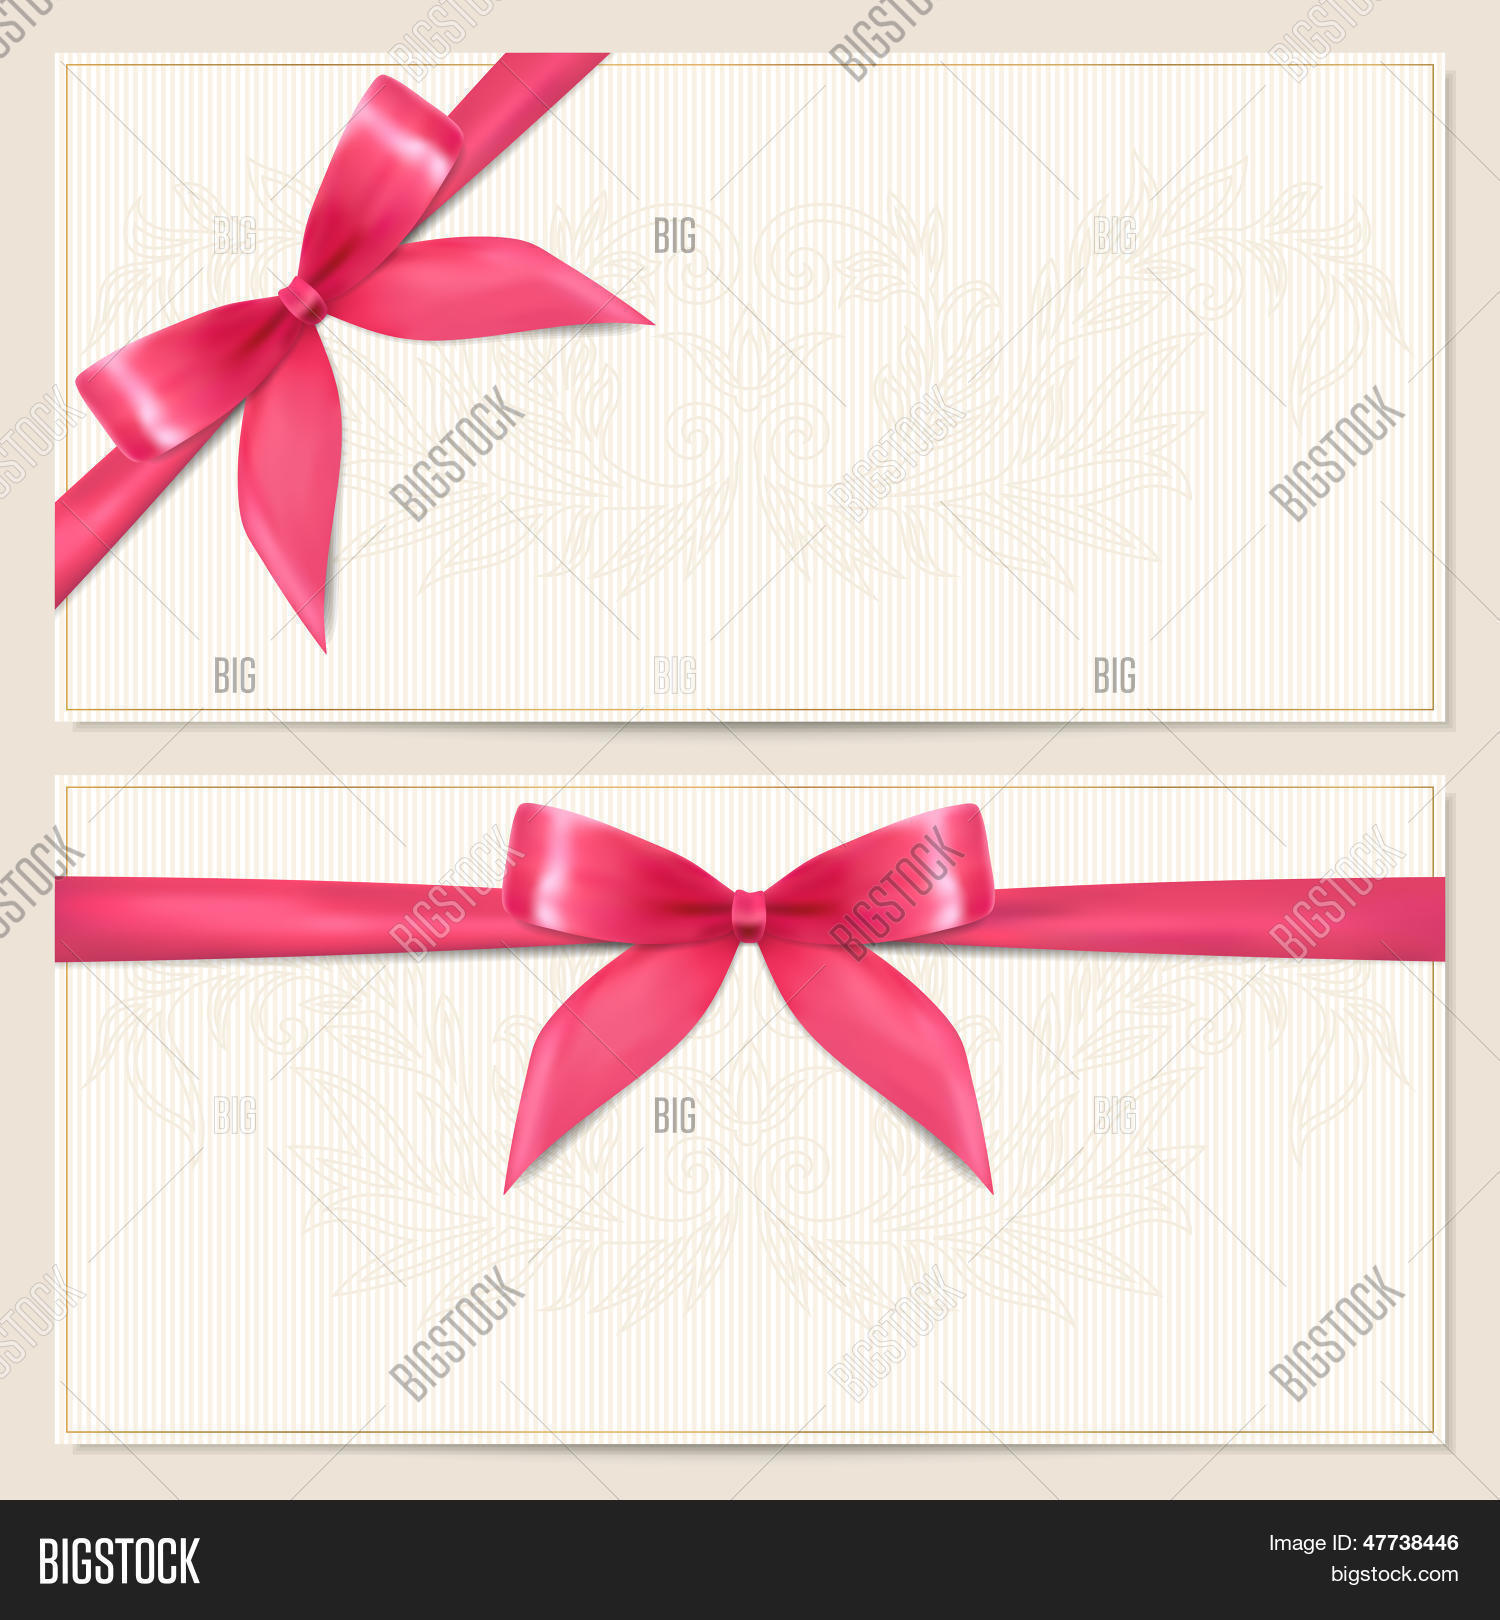 Voucher Gift Vector Photo Free Trial Bigstock